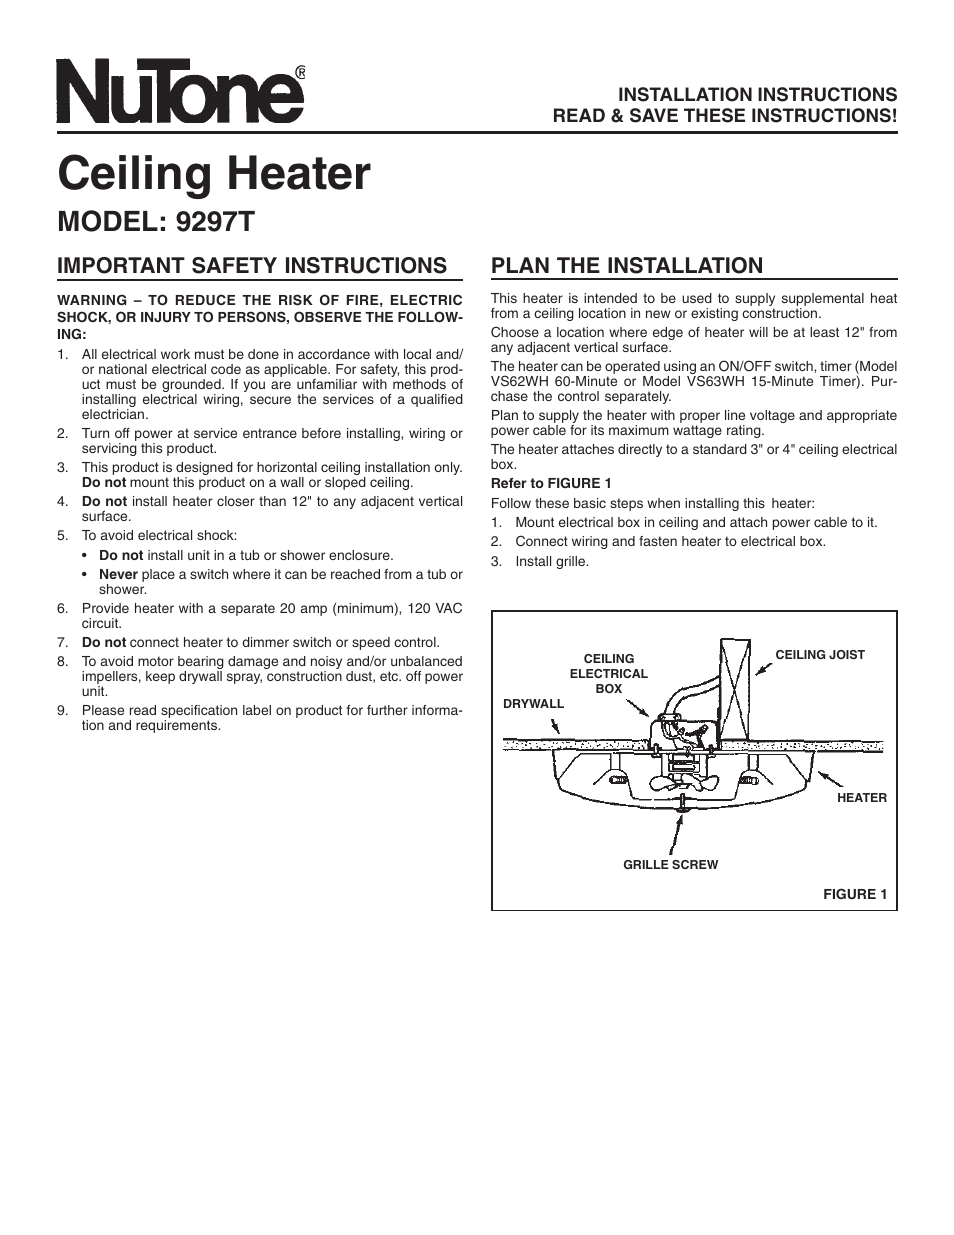 Nutone Ceiling Heater Wiring Diagram 9297t User Manual 8 Pages